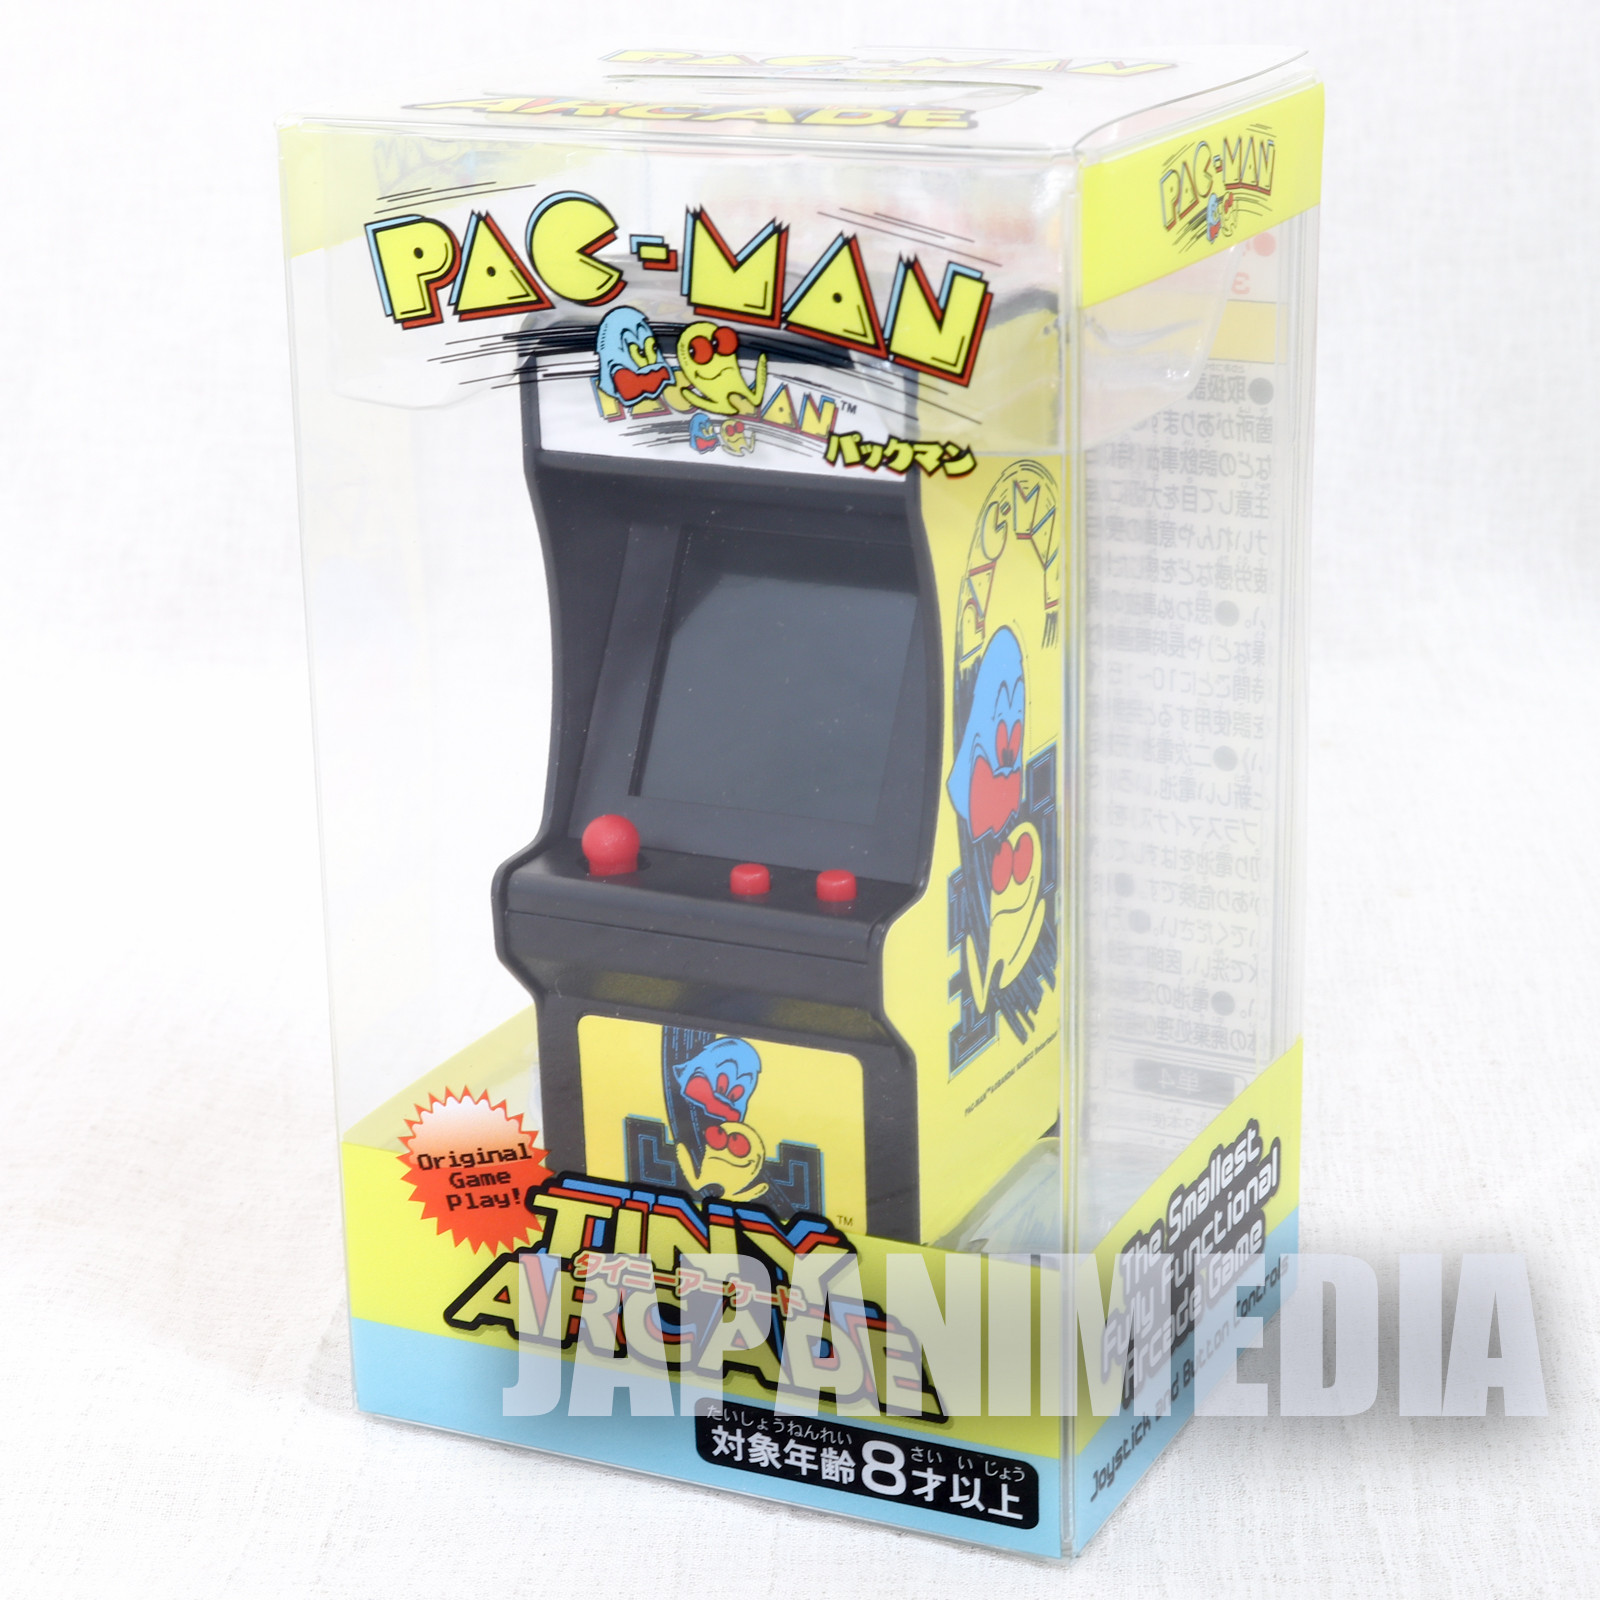 Tiny Arcade PAC-MAN The Smallest Fully Functional Arcade Game Machine